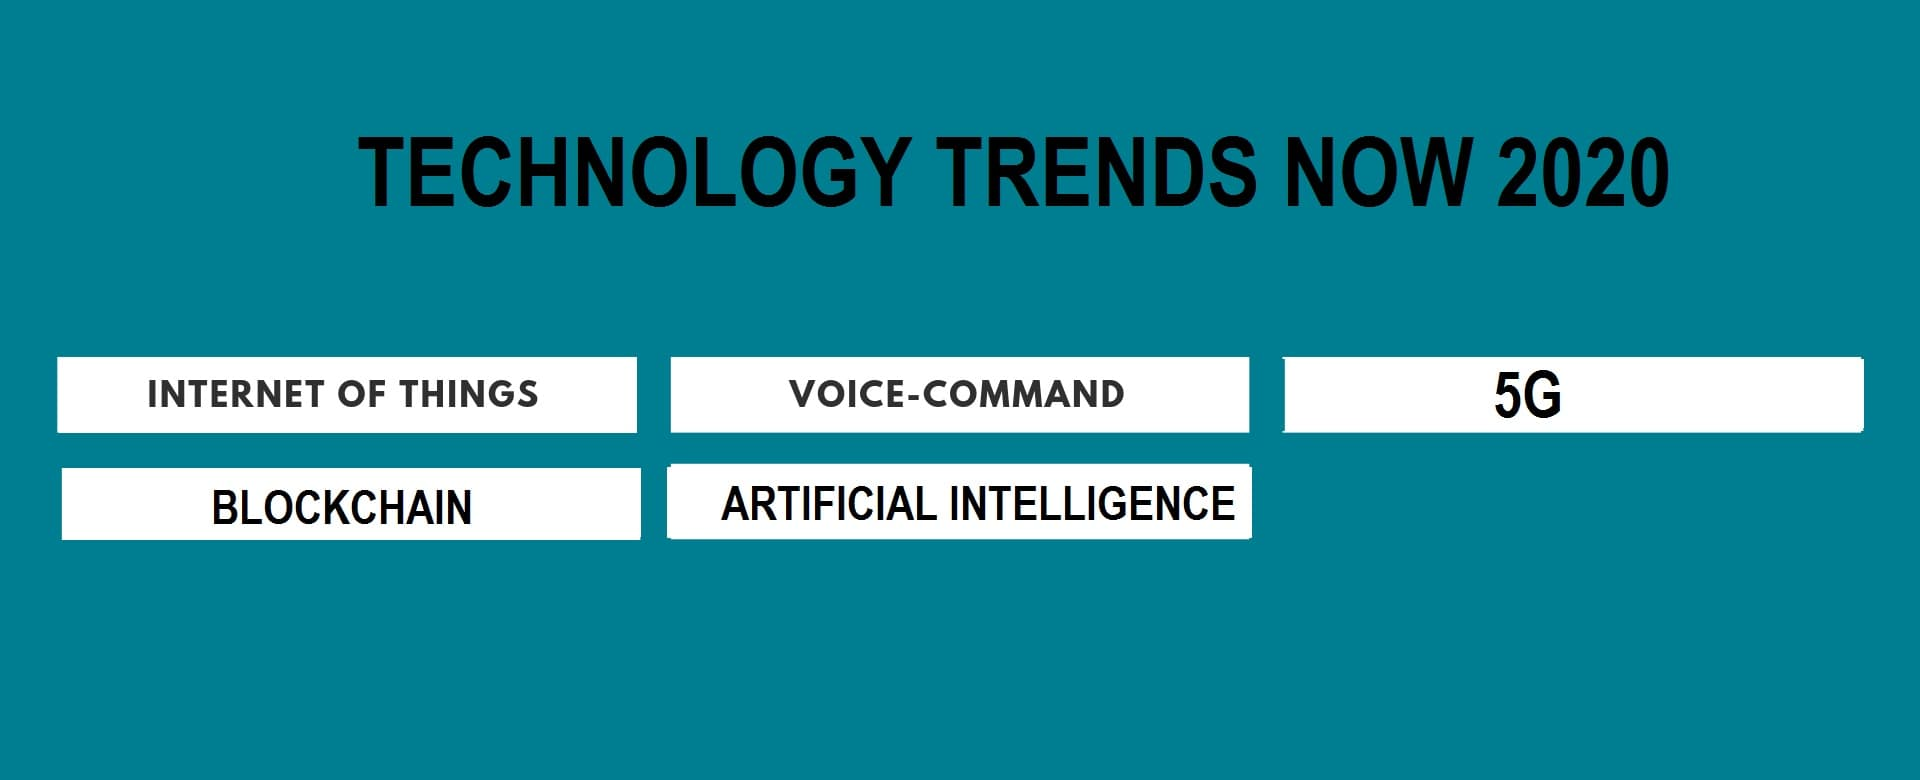 Top Technology Trends 2020.Top 5 Technology Trends For 2020 According To Techpcvipers